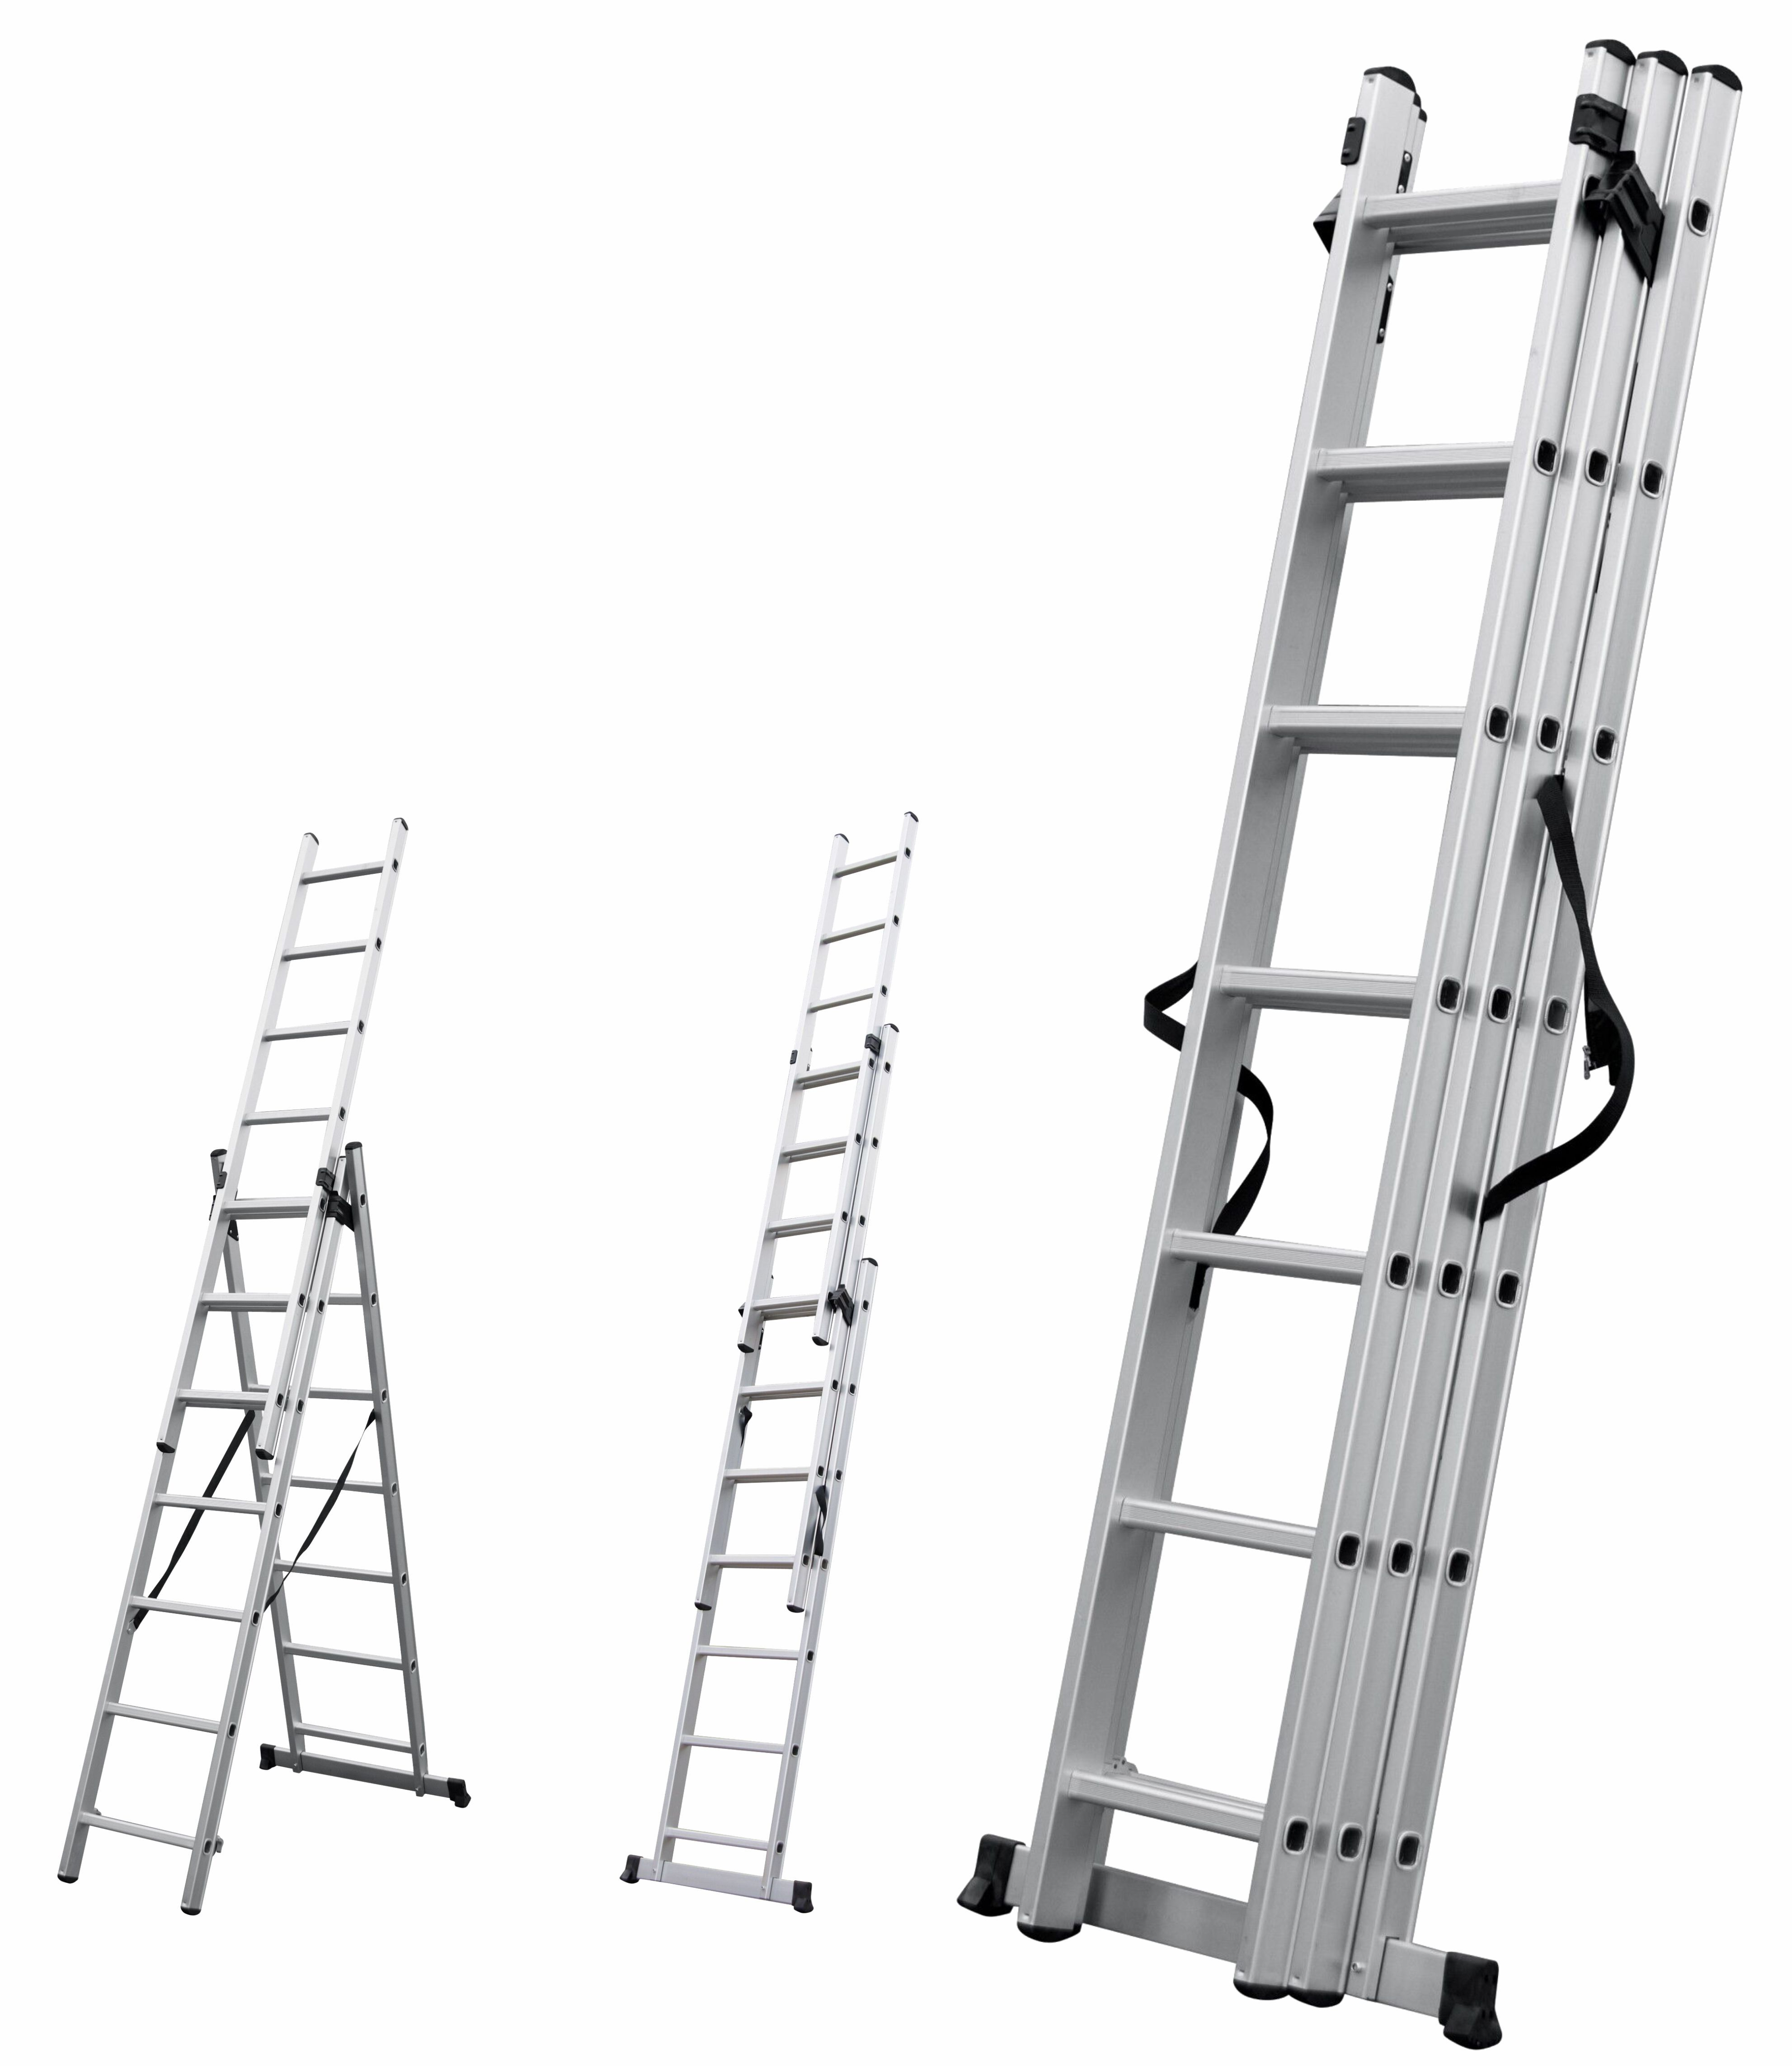 PROTOOL 3 SECTION EXTENSION LADDER